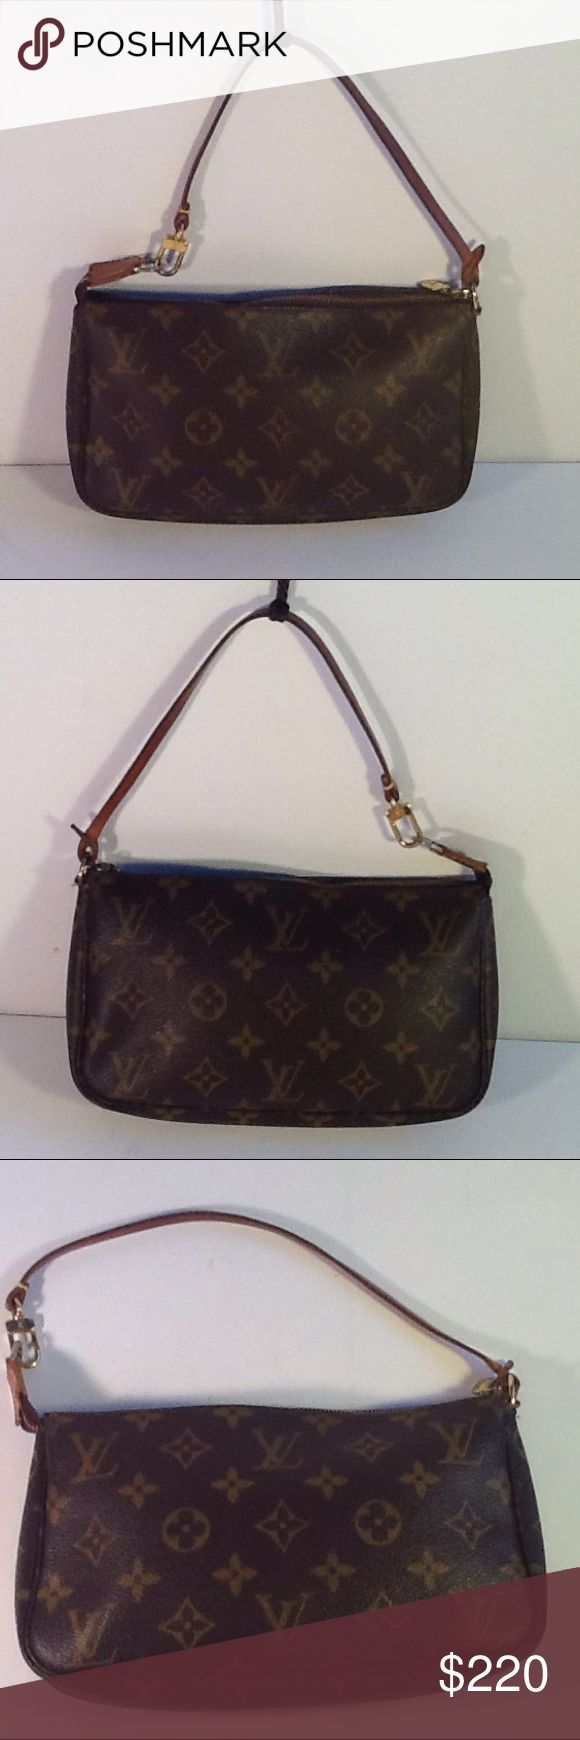 Authentic Louis Vuitton Monogram Pochette Hanbag. The canvas and inside linen are good. The strap showed signs of used . The bag was made in France with a date code AR 1020.  The dimension us 5, 8 and 1. Louis Vuitton Bags Clutches & Wristlets